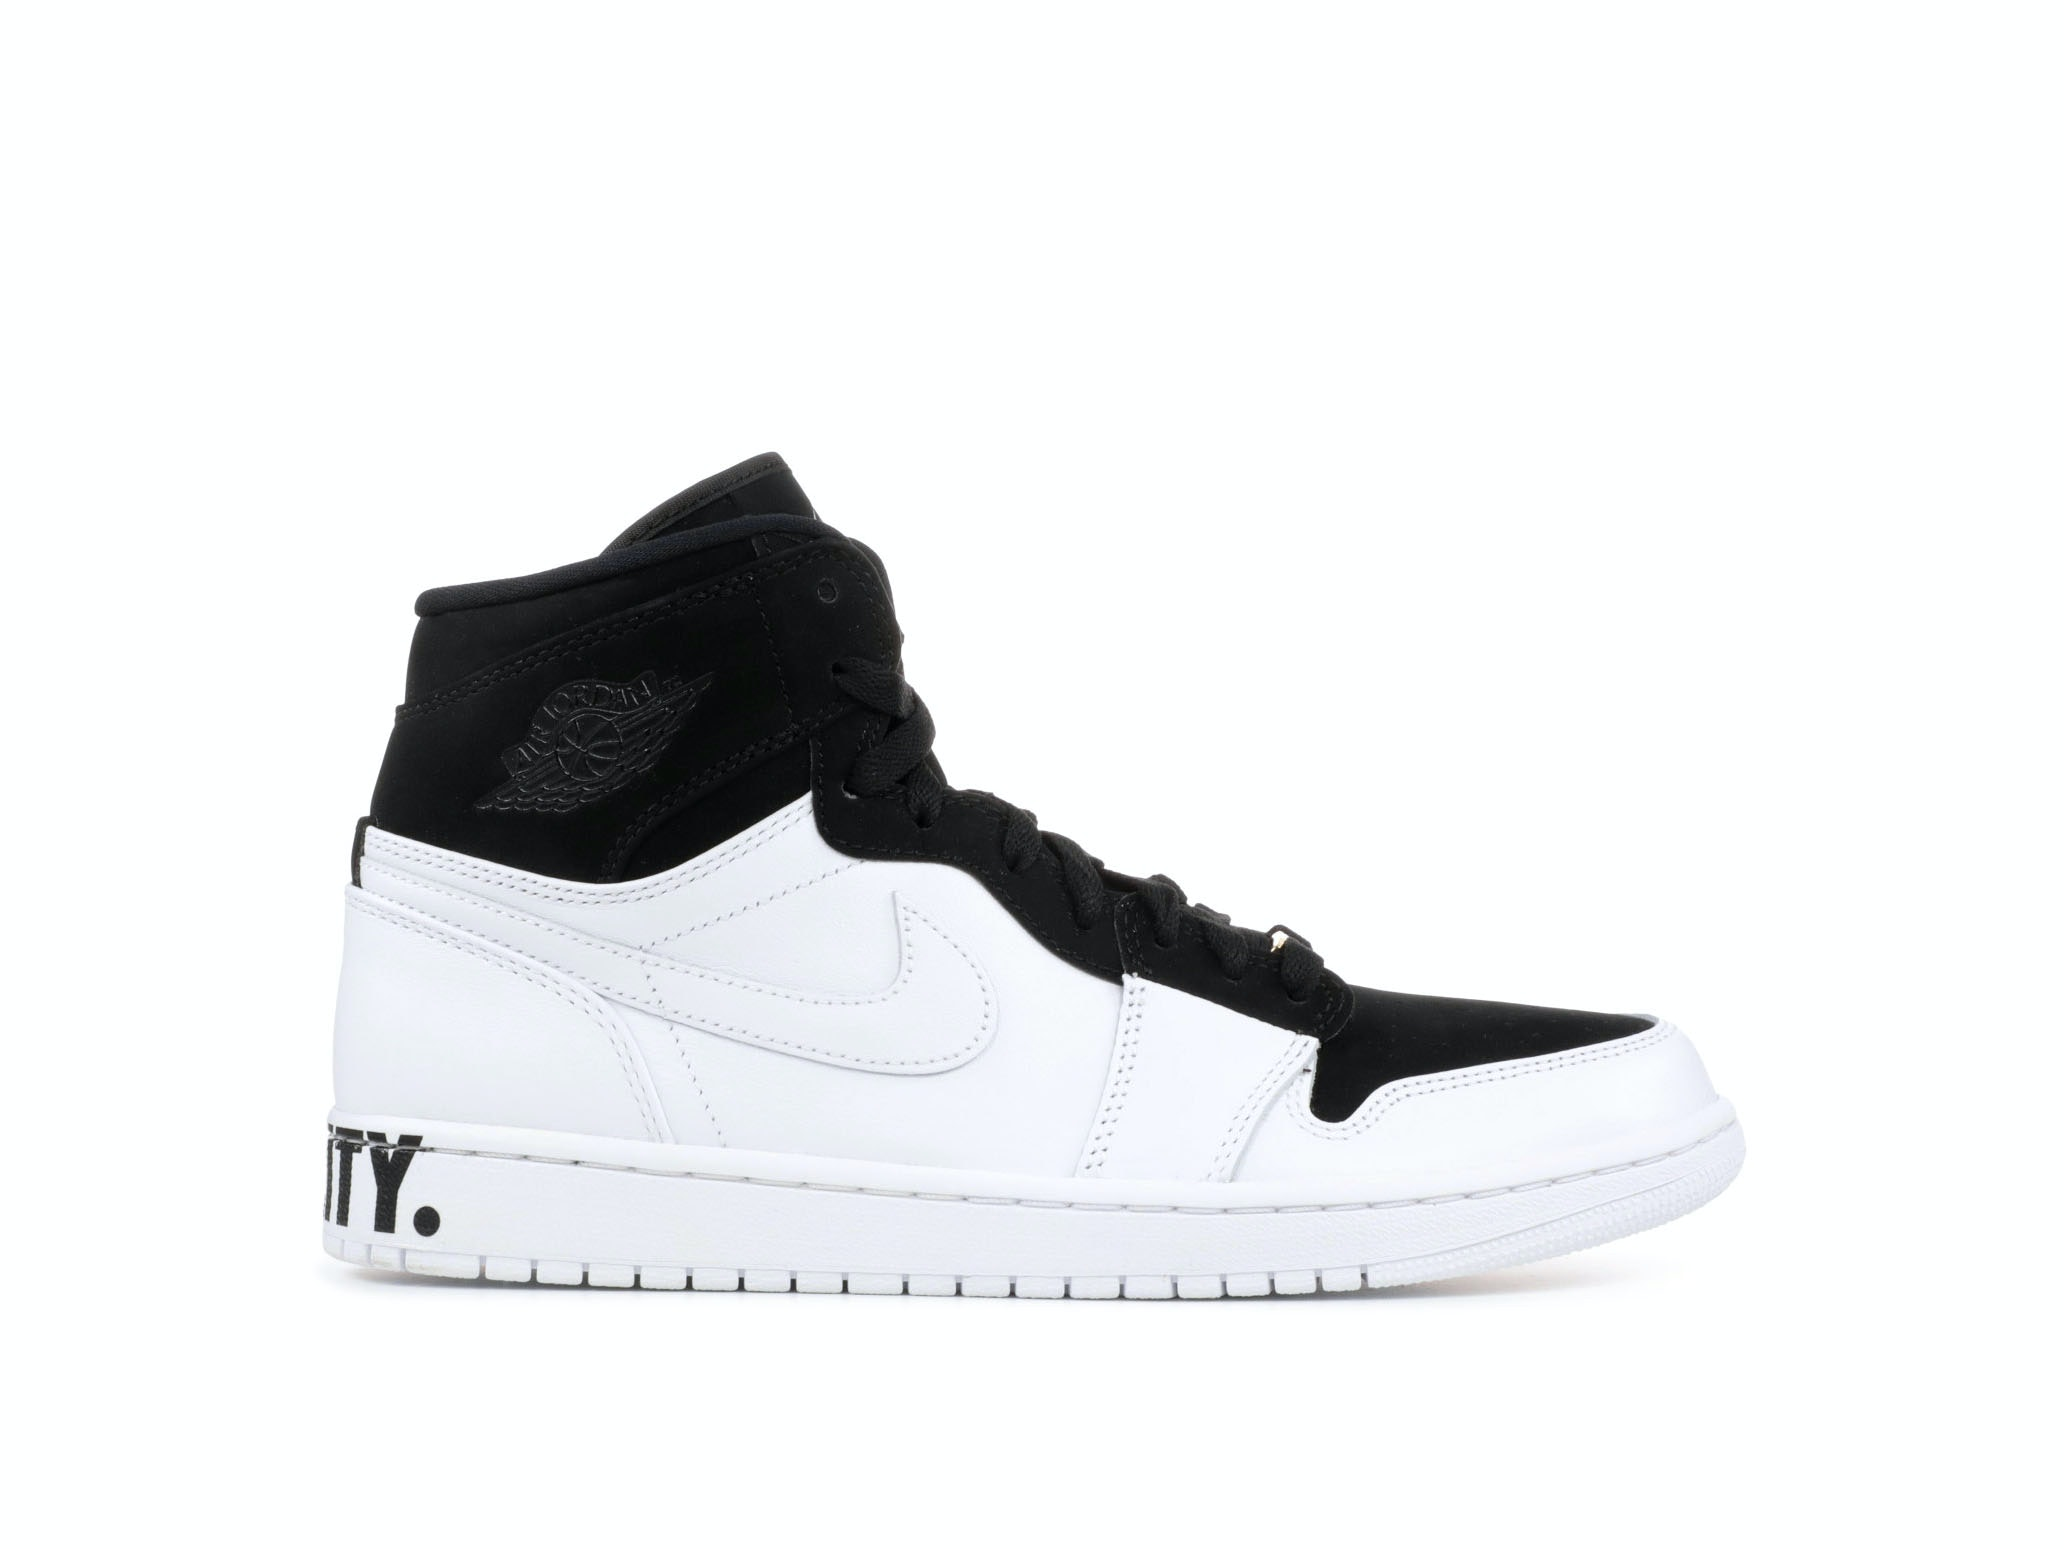 9357431bcc70 Shop Air Jordan 1 Retro High Equality Online